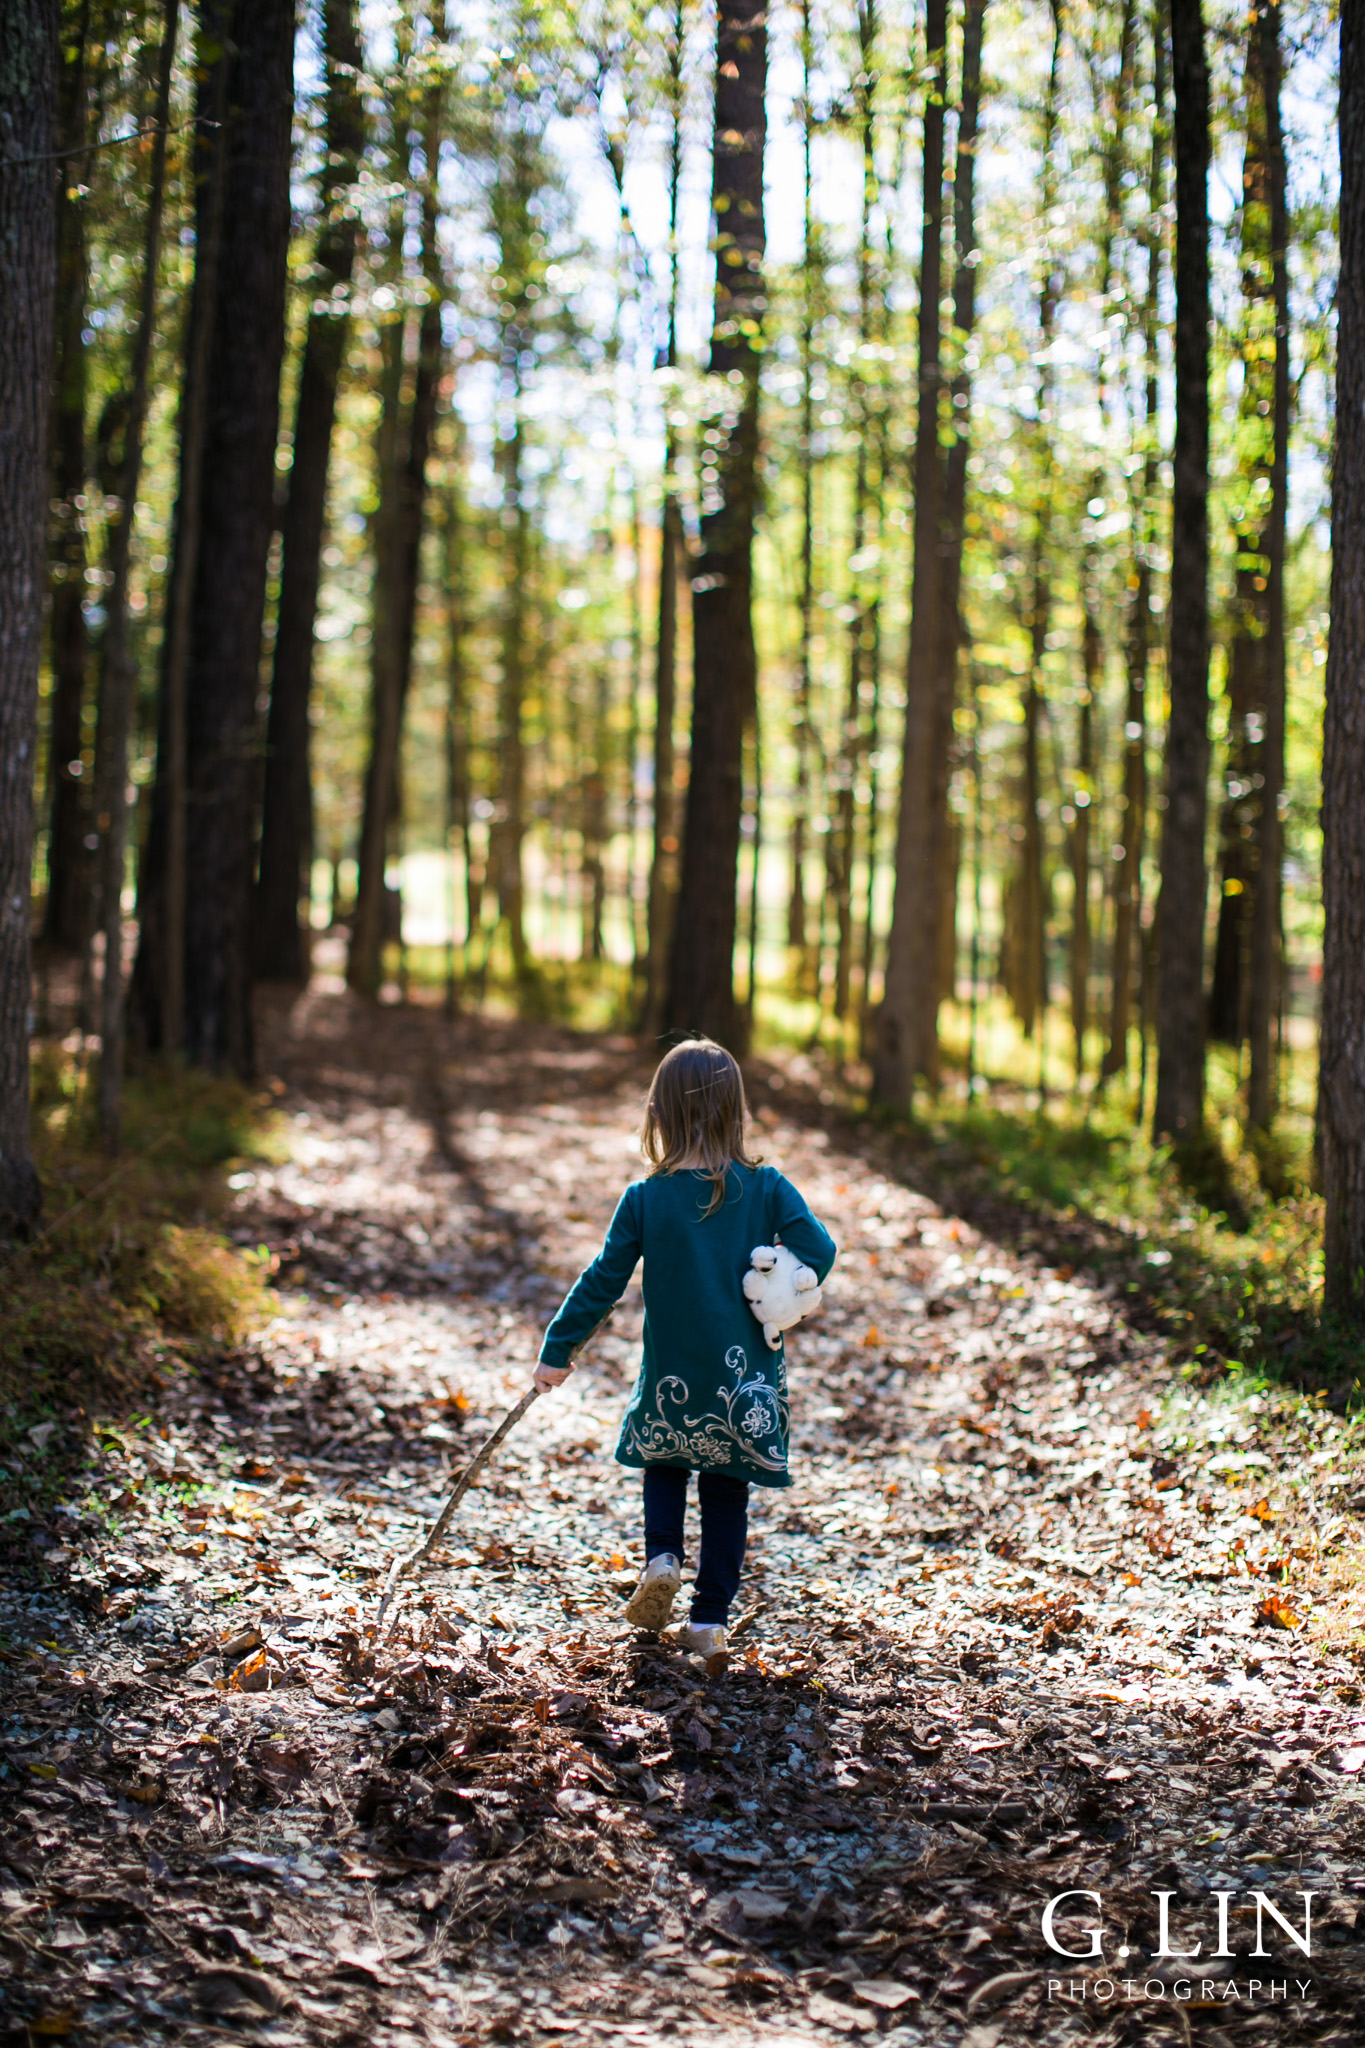 Durham Family Photographer | G. Lin Photography | Little girl walking in woods